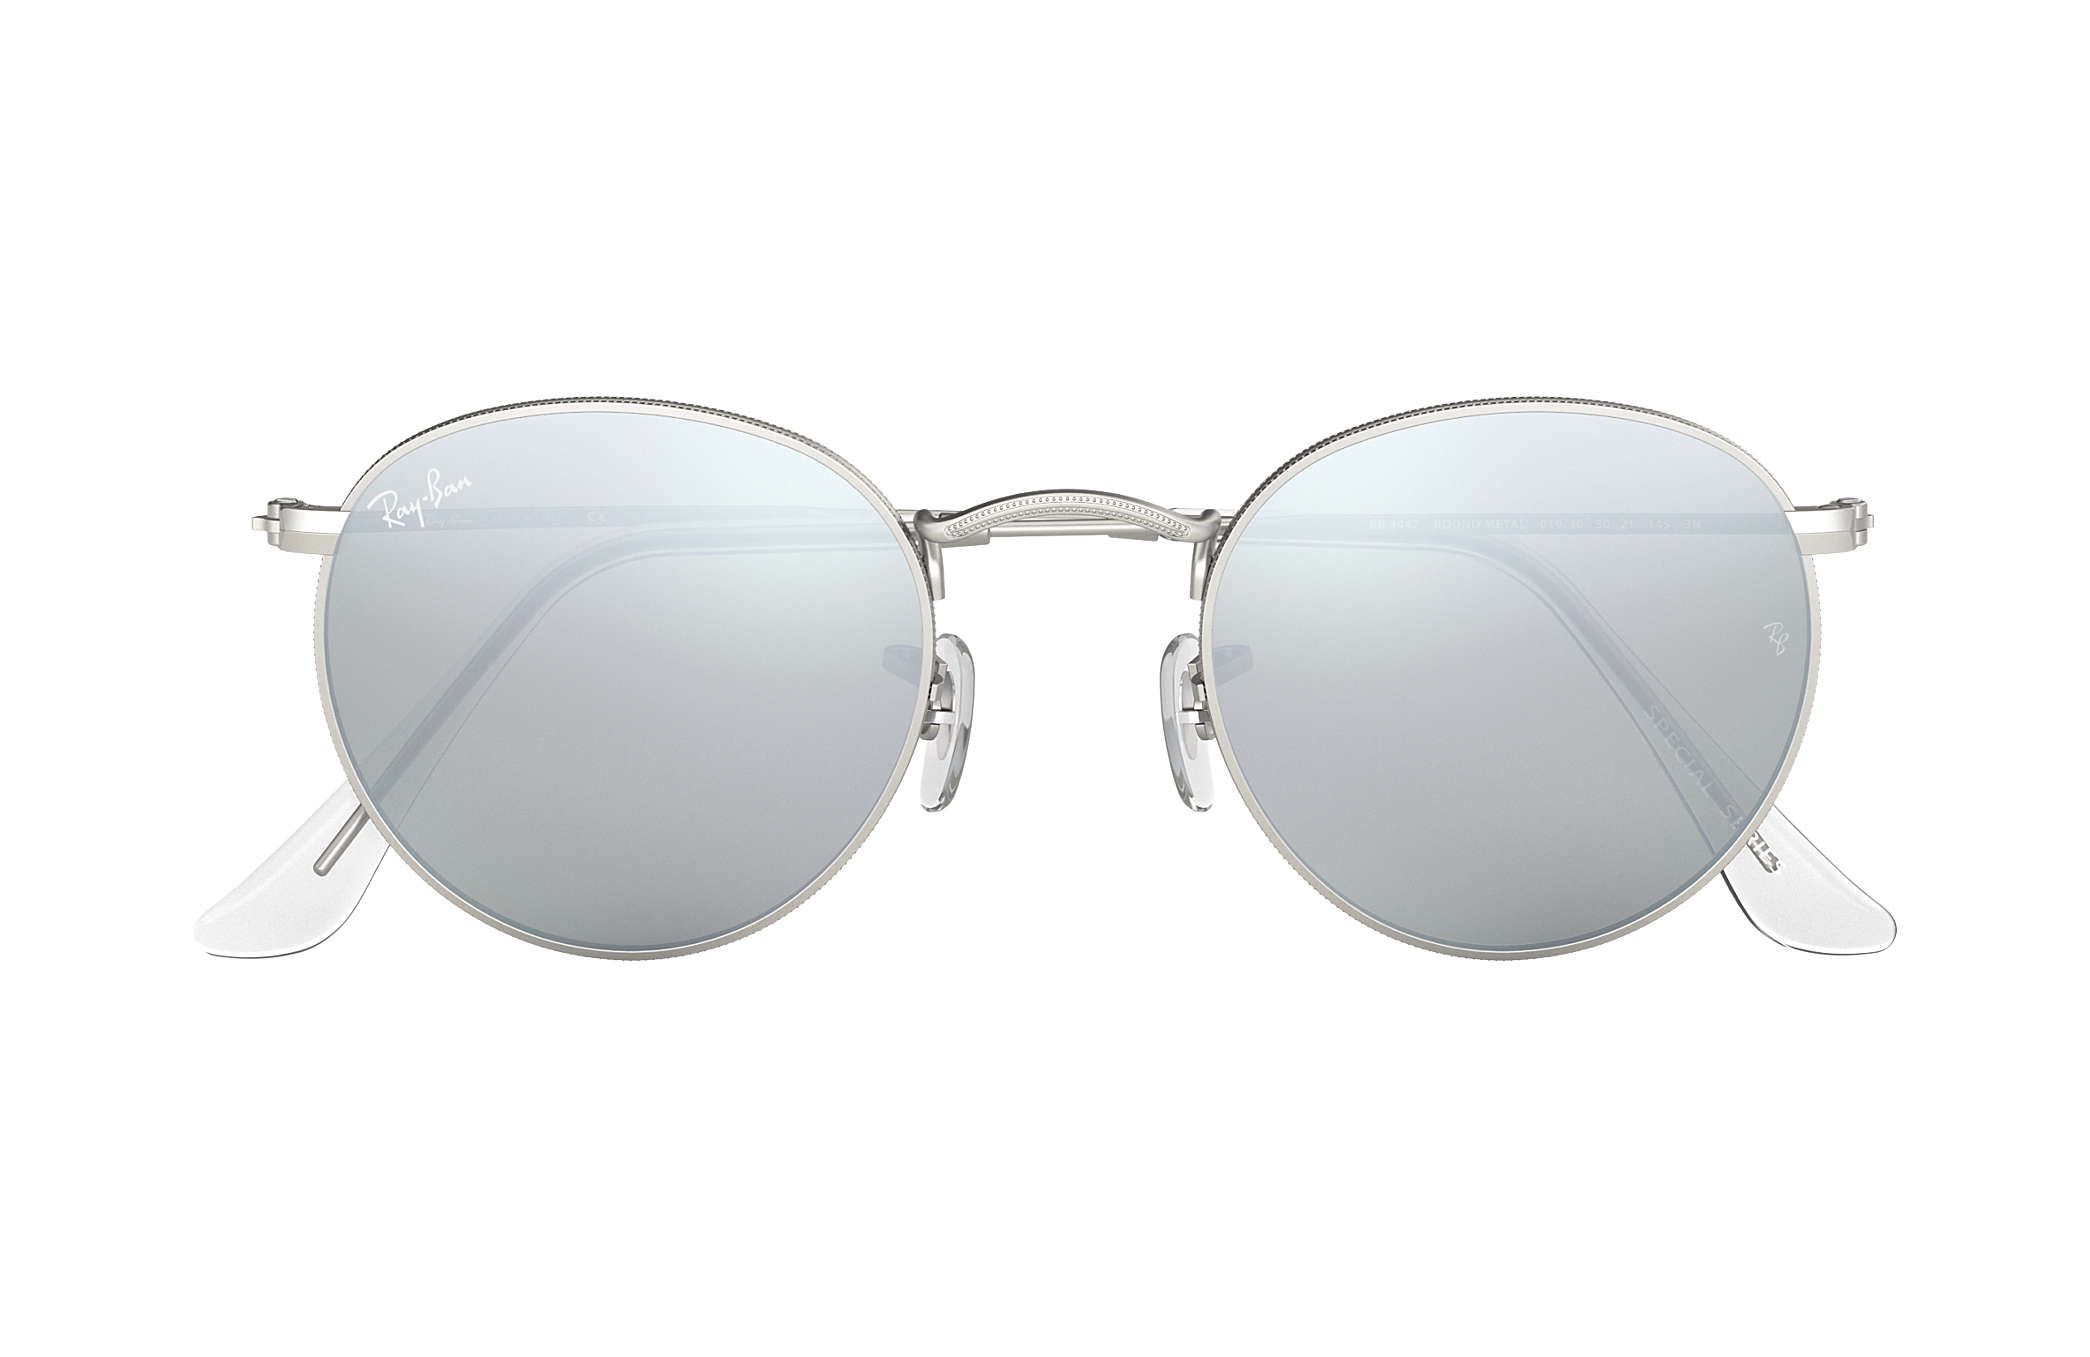 54d7d00f592 Ray-Ban Round Flash Lenses RB3447 Silver - Metal - Silver Lenses ...